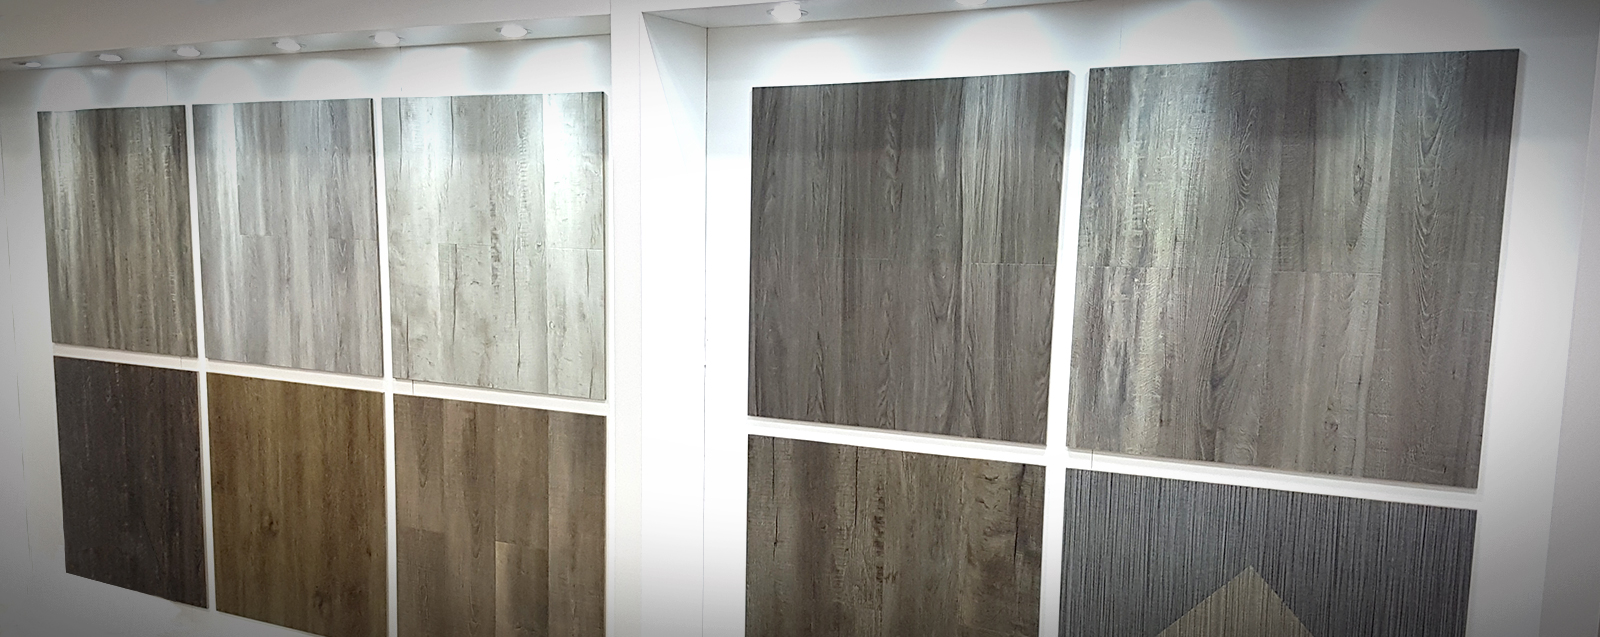 Luxury Commercial Vinyl Tiles & Planks